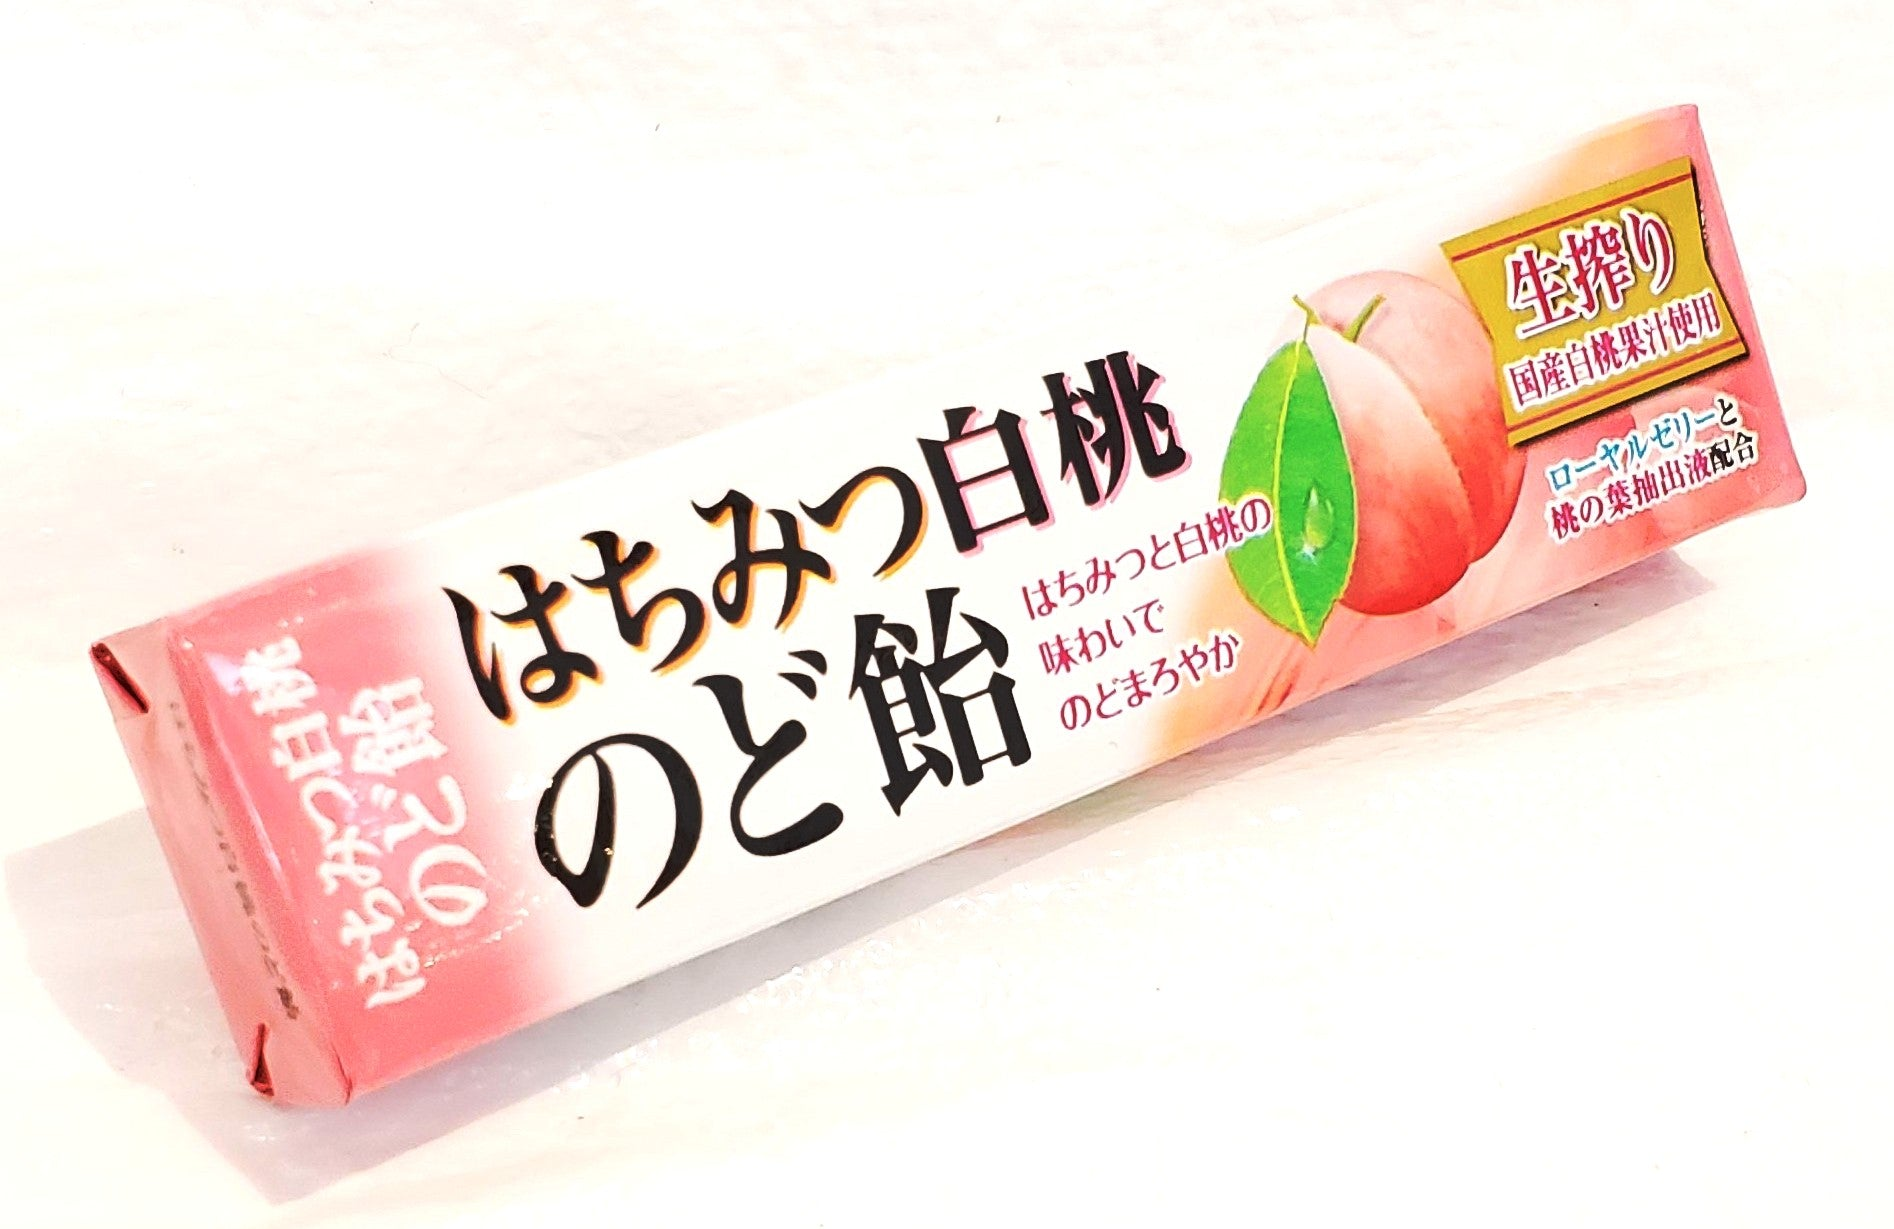 Nobel white peach candy 樂寳白桃糖